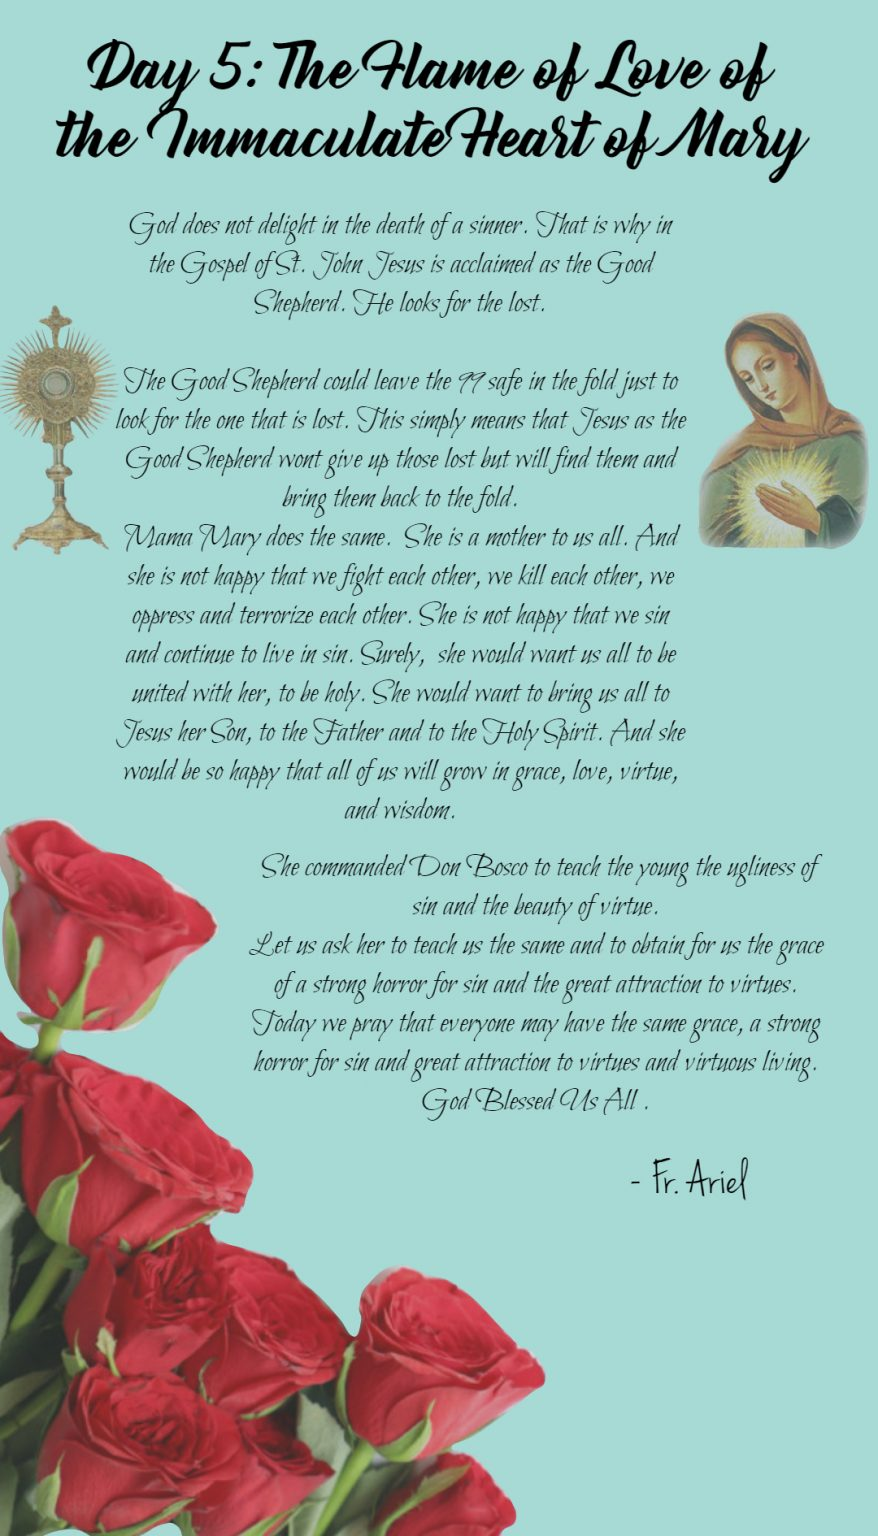 Fifth day of Novena